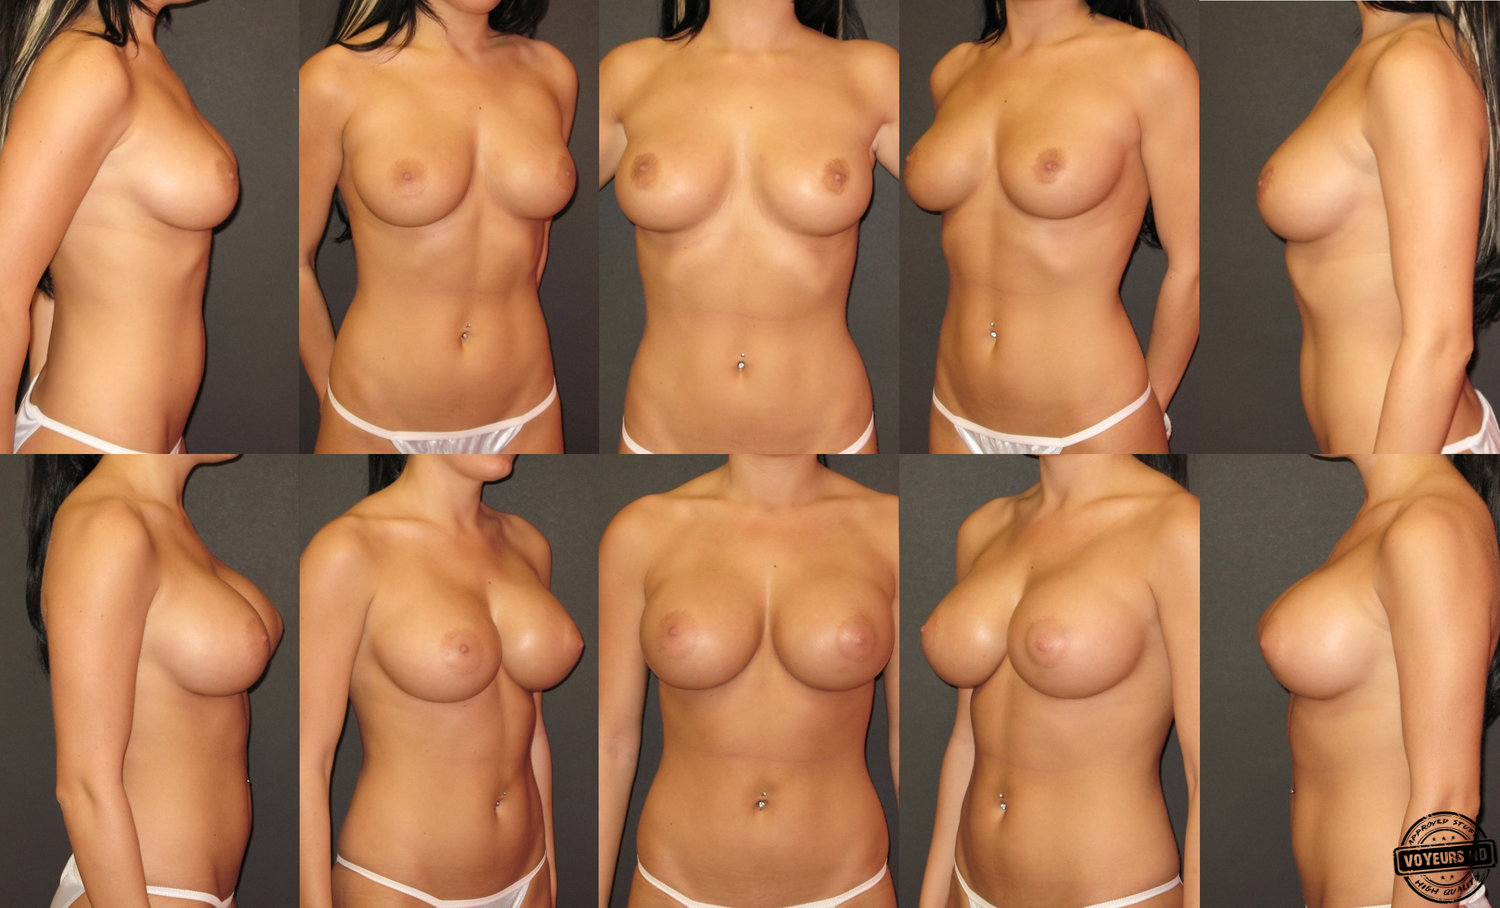 Boob job before and after nude